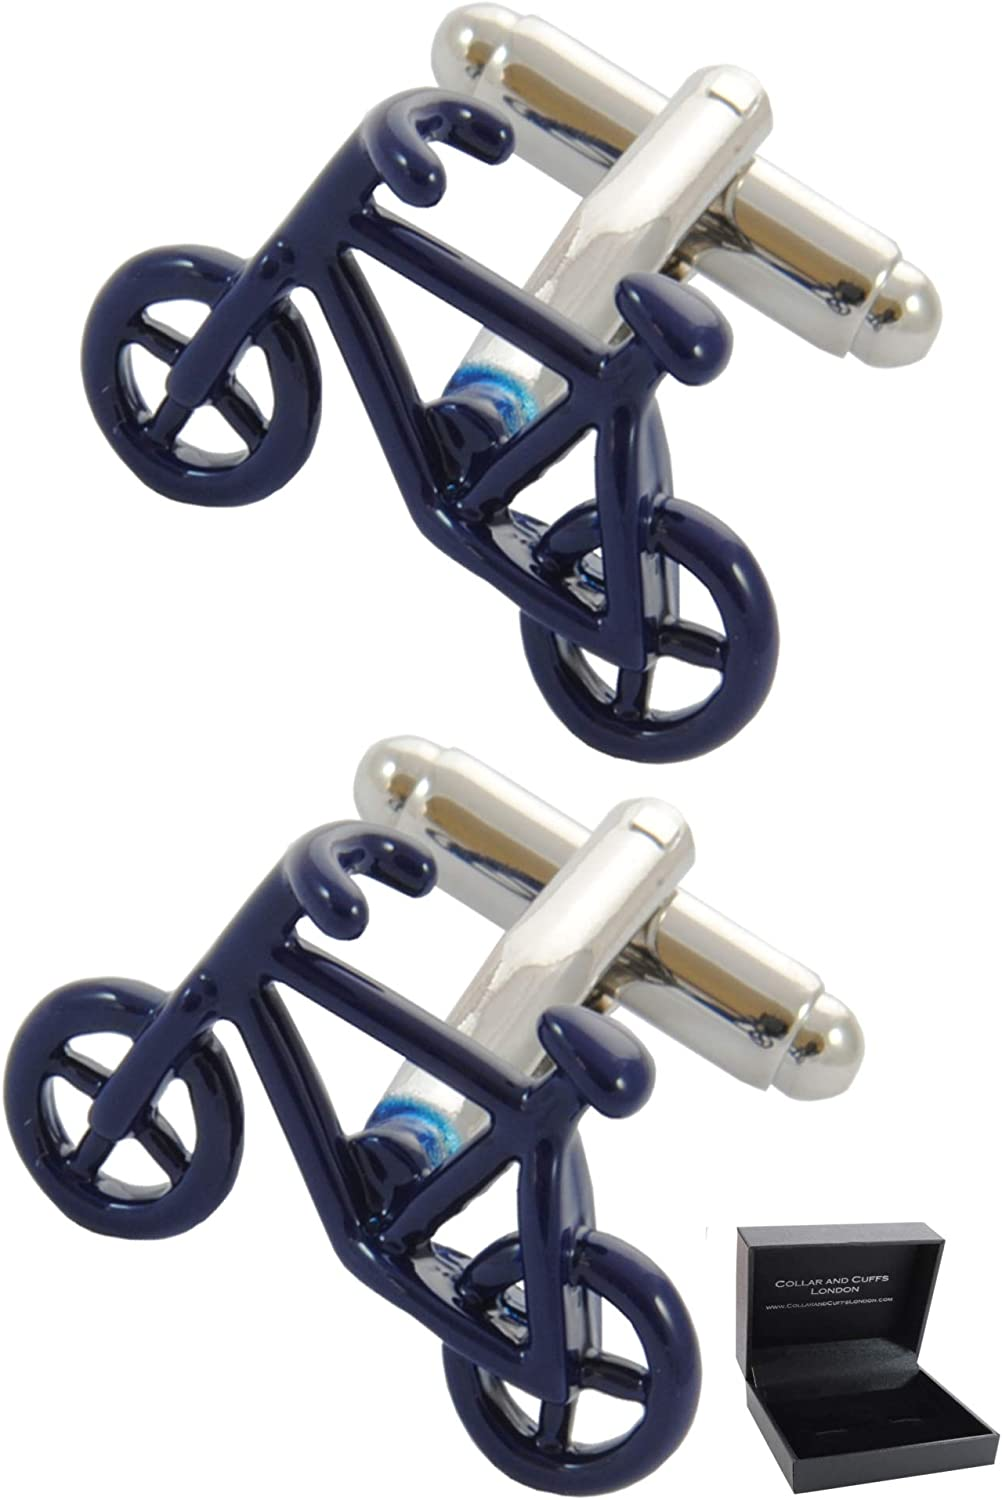 COLLAR AND CUFFS LONDON - Premium Cufflinks with Gift Box - Bicycle - Blue Color - Cycling - Pedal Bike - Cycle